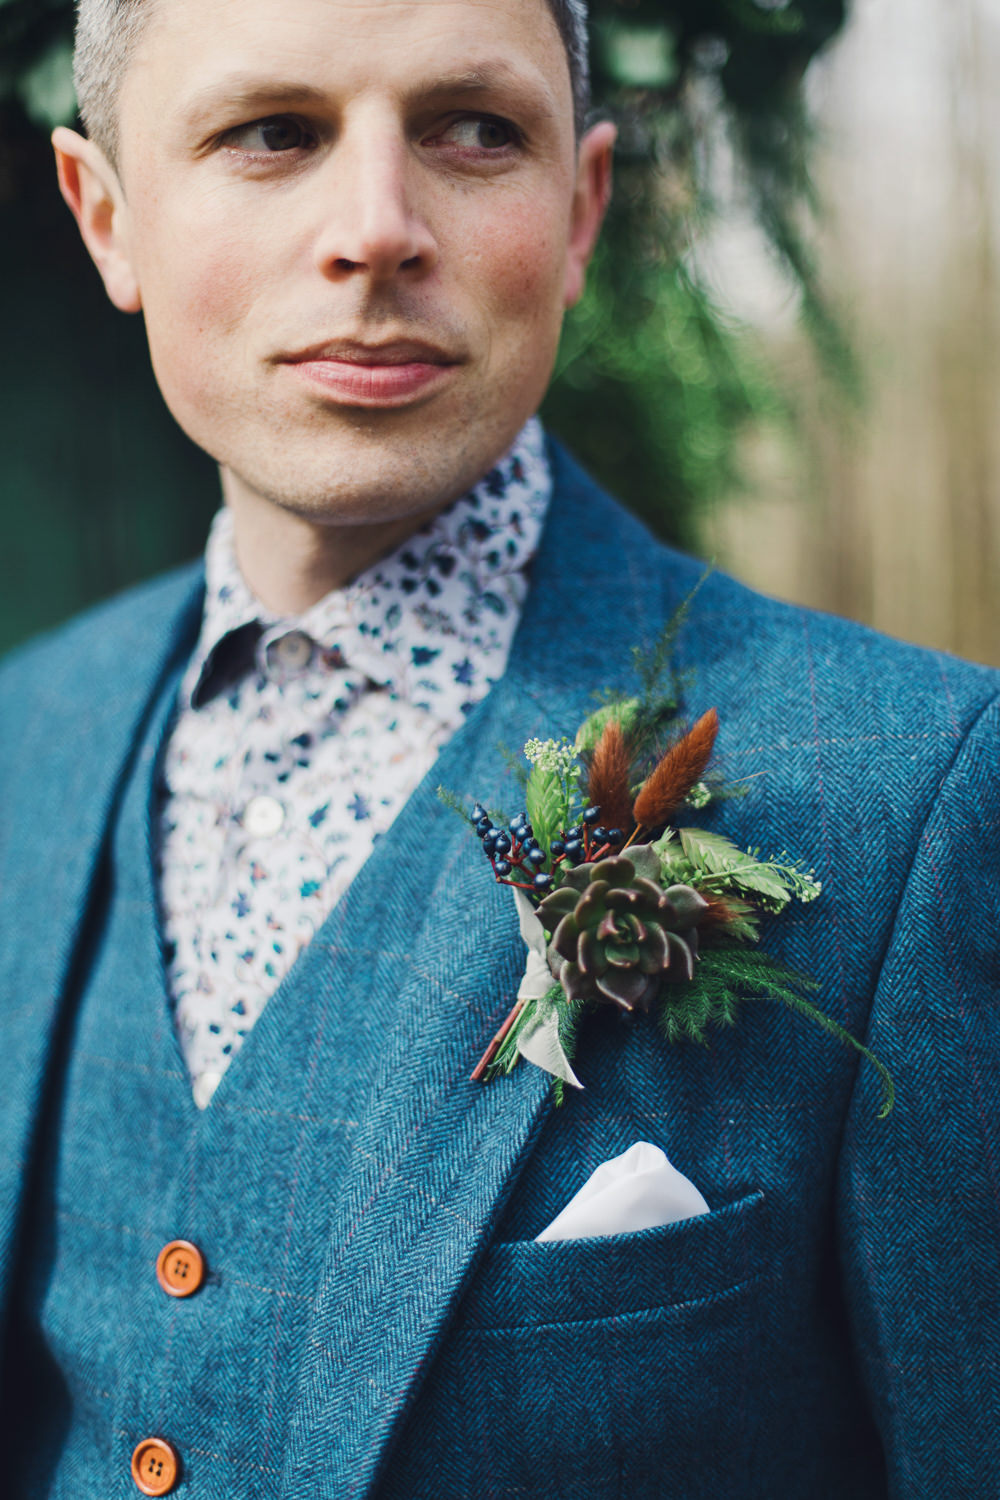 Groom Blue Suit Waistcoat Floral Shirt Buttonhole Succulent Berry Greenery Nordic Woodland Elopement Wedding Ideas Nina Wernicke Photography